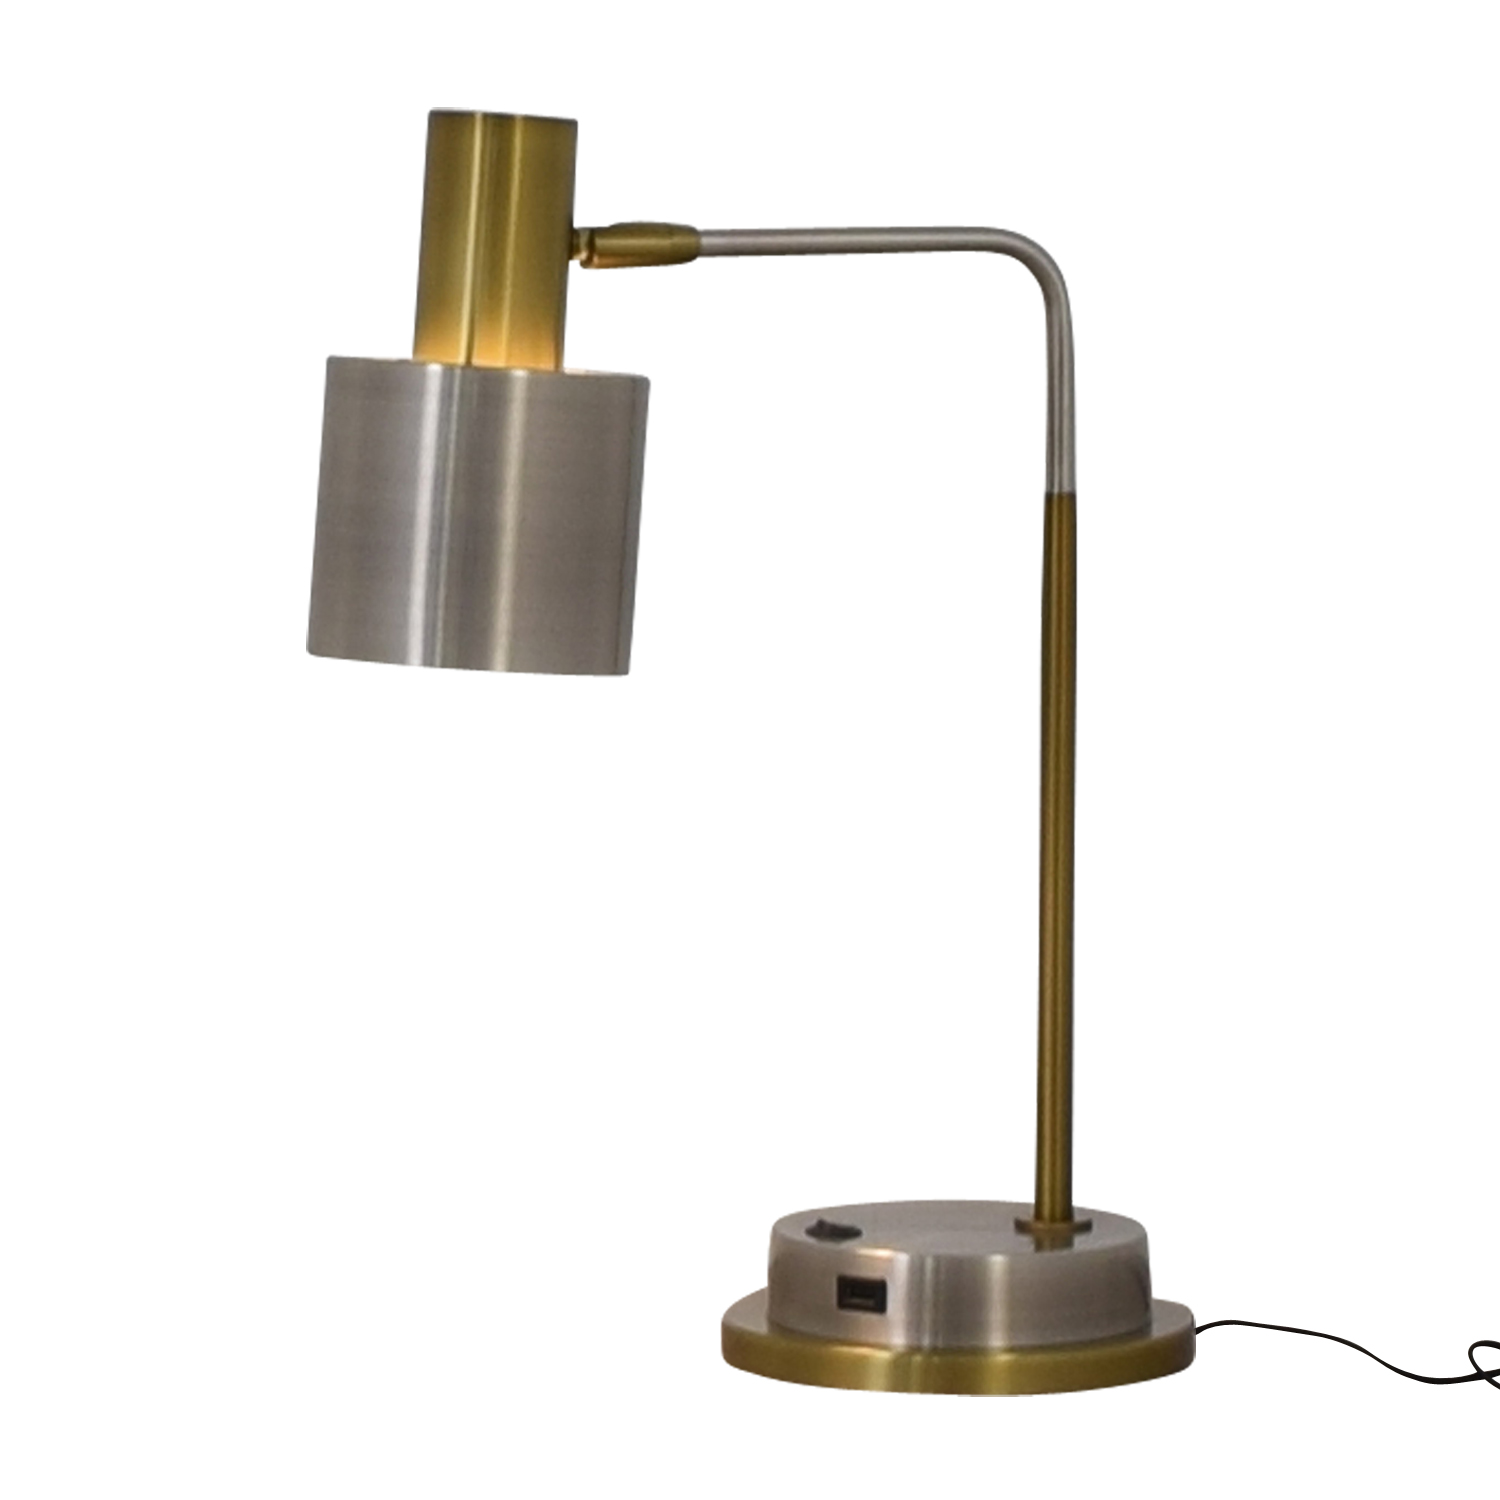 West Elm West Elm Metal Task Table Lamp with USB Port coupon